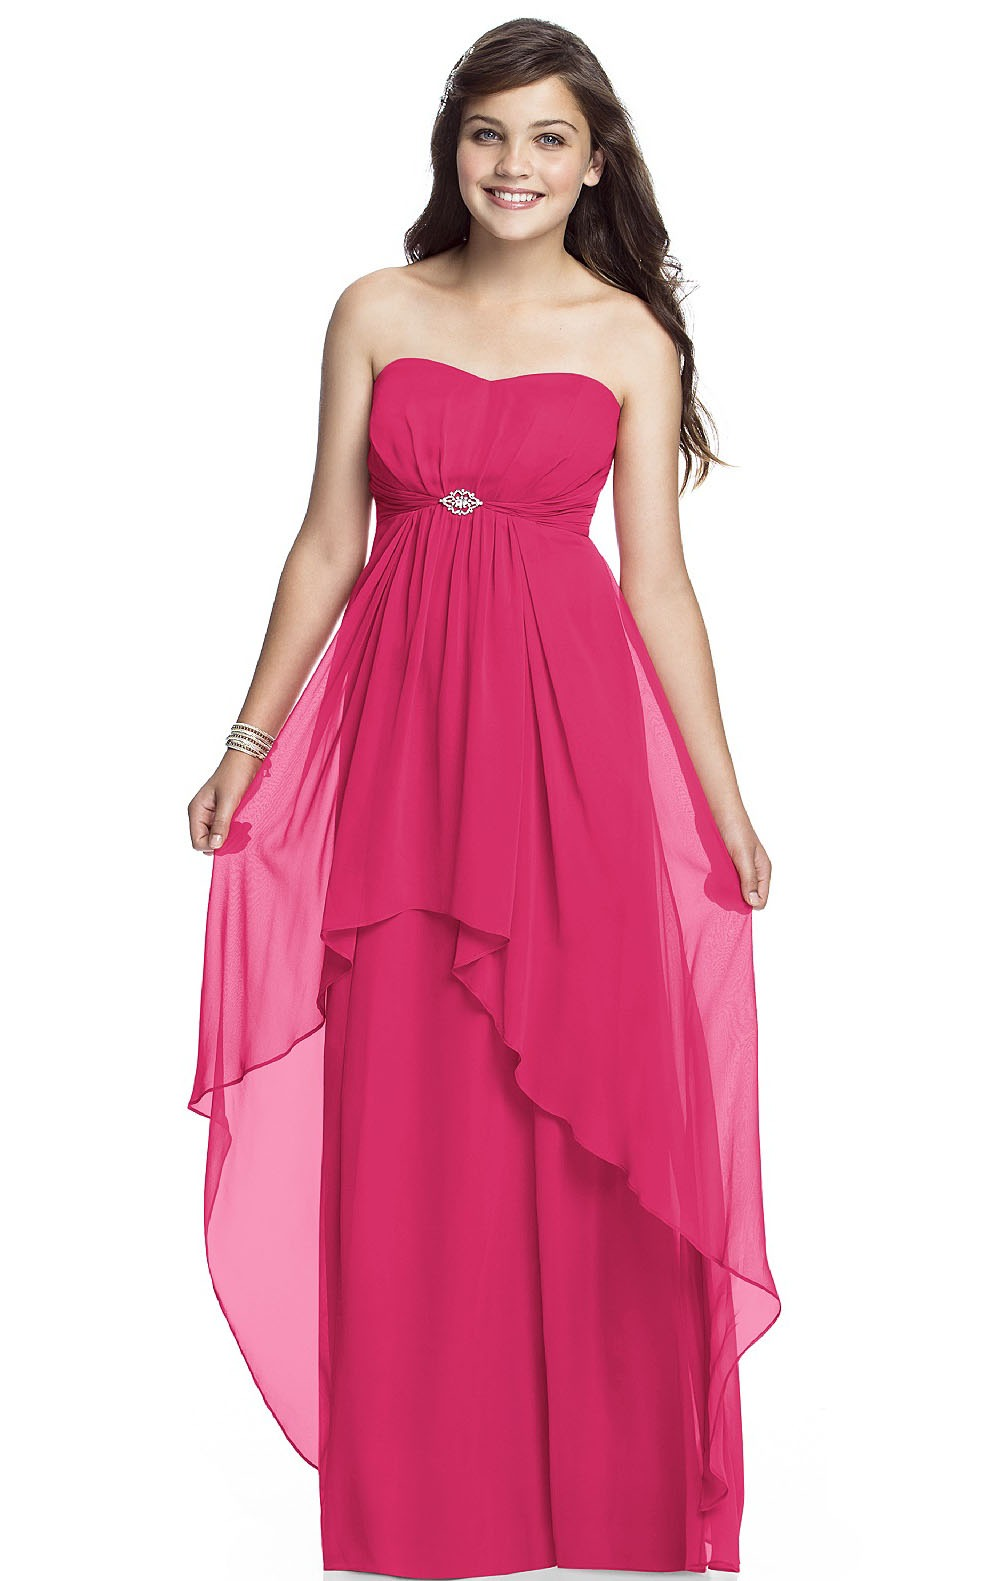 Strapless Zipper A-line Sleeveless Natural Bridesmaid Dresses